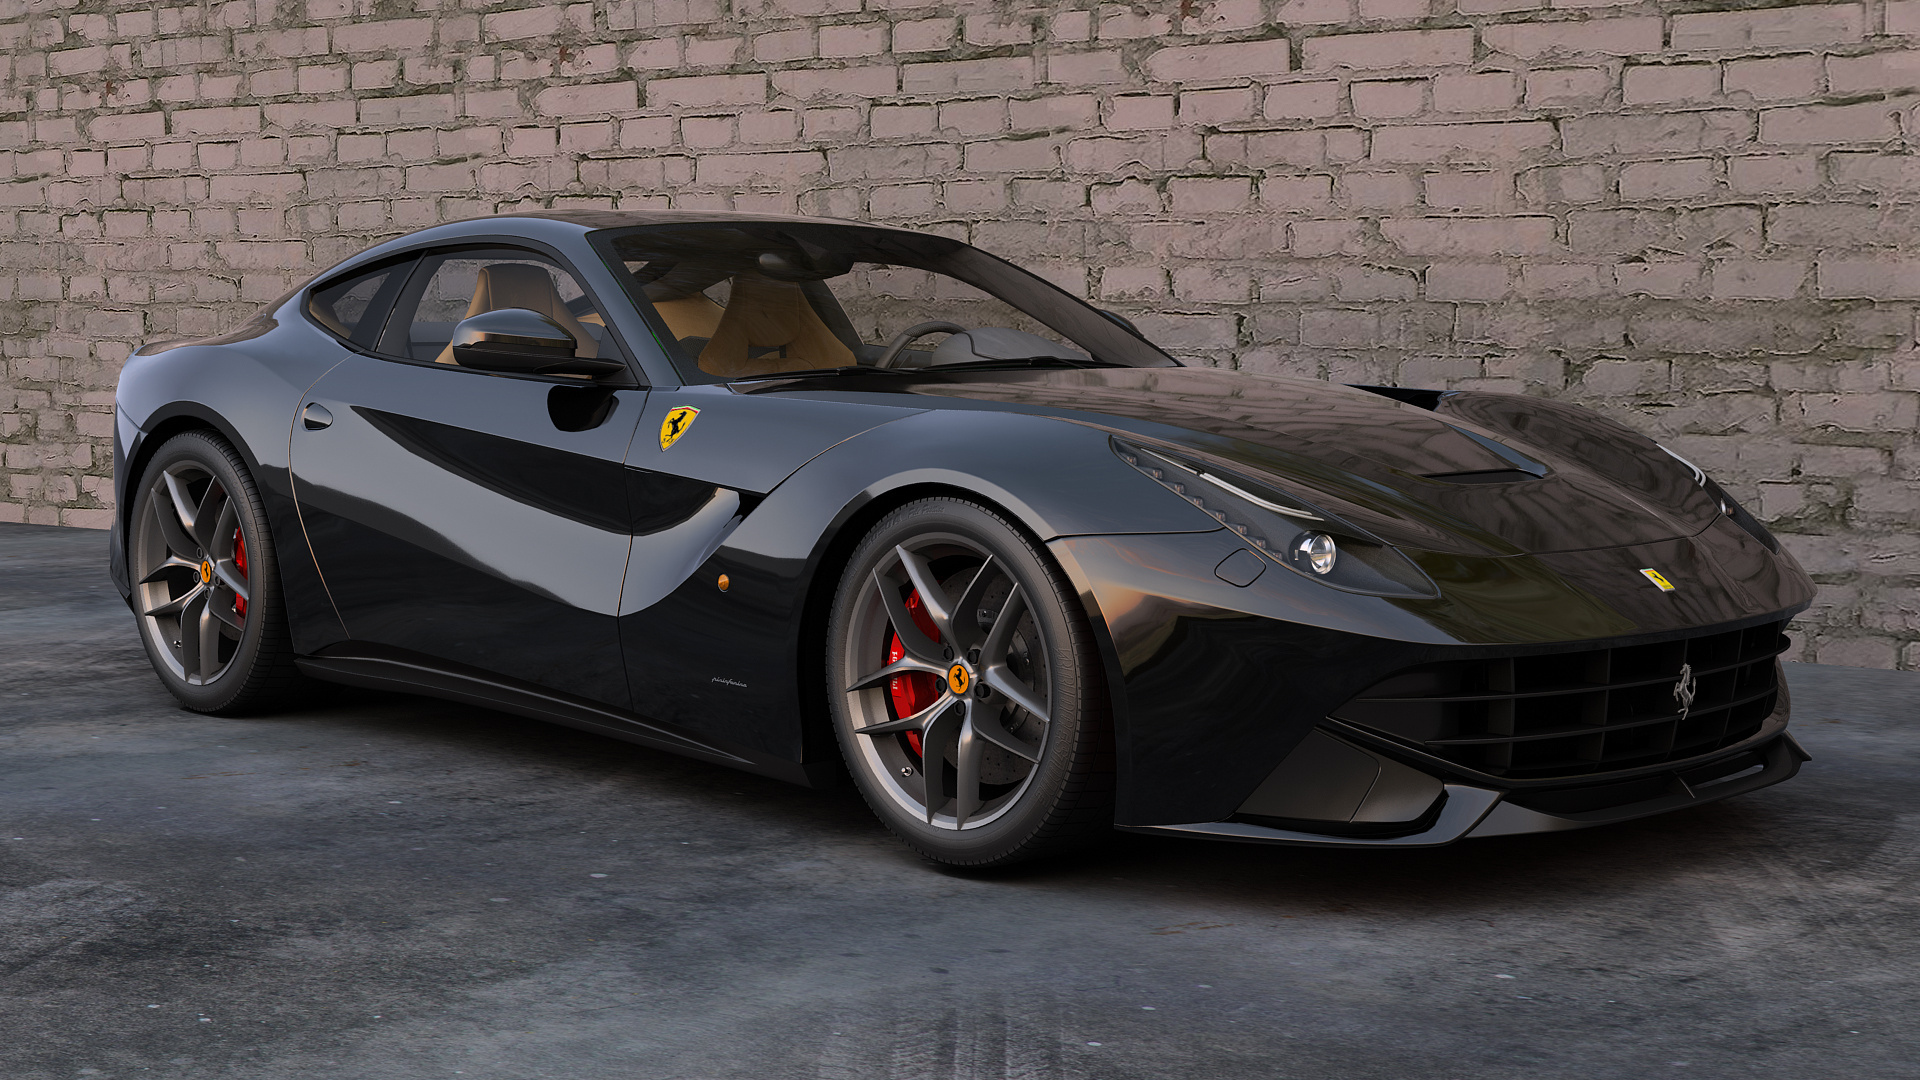 Ferrari F12berlinetta Full Hd Wallpaper And Background